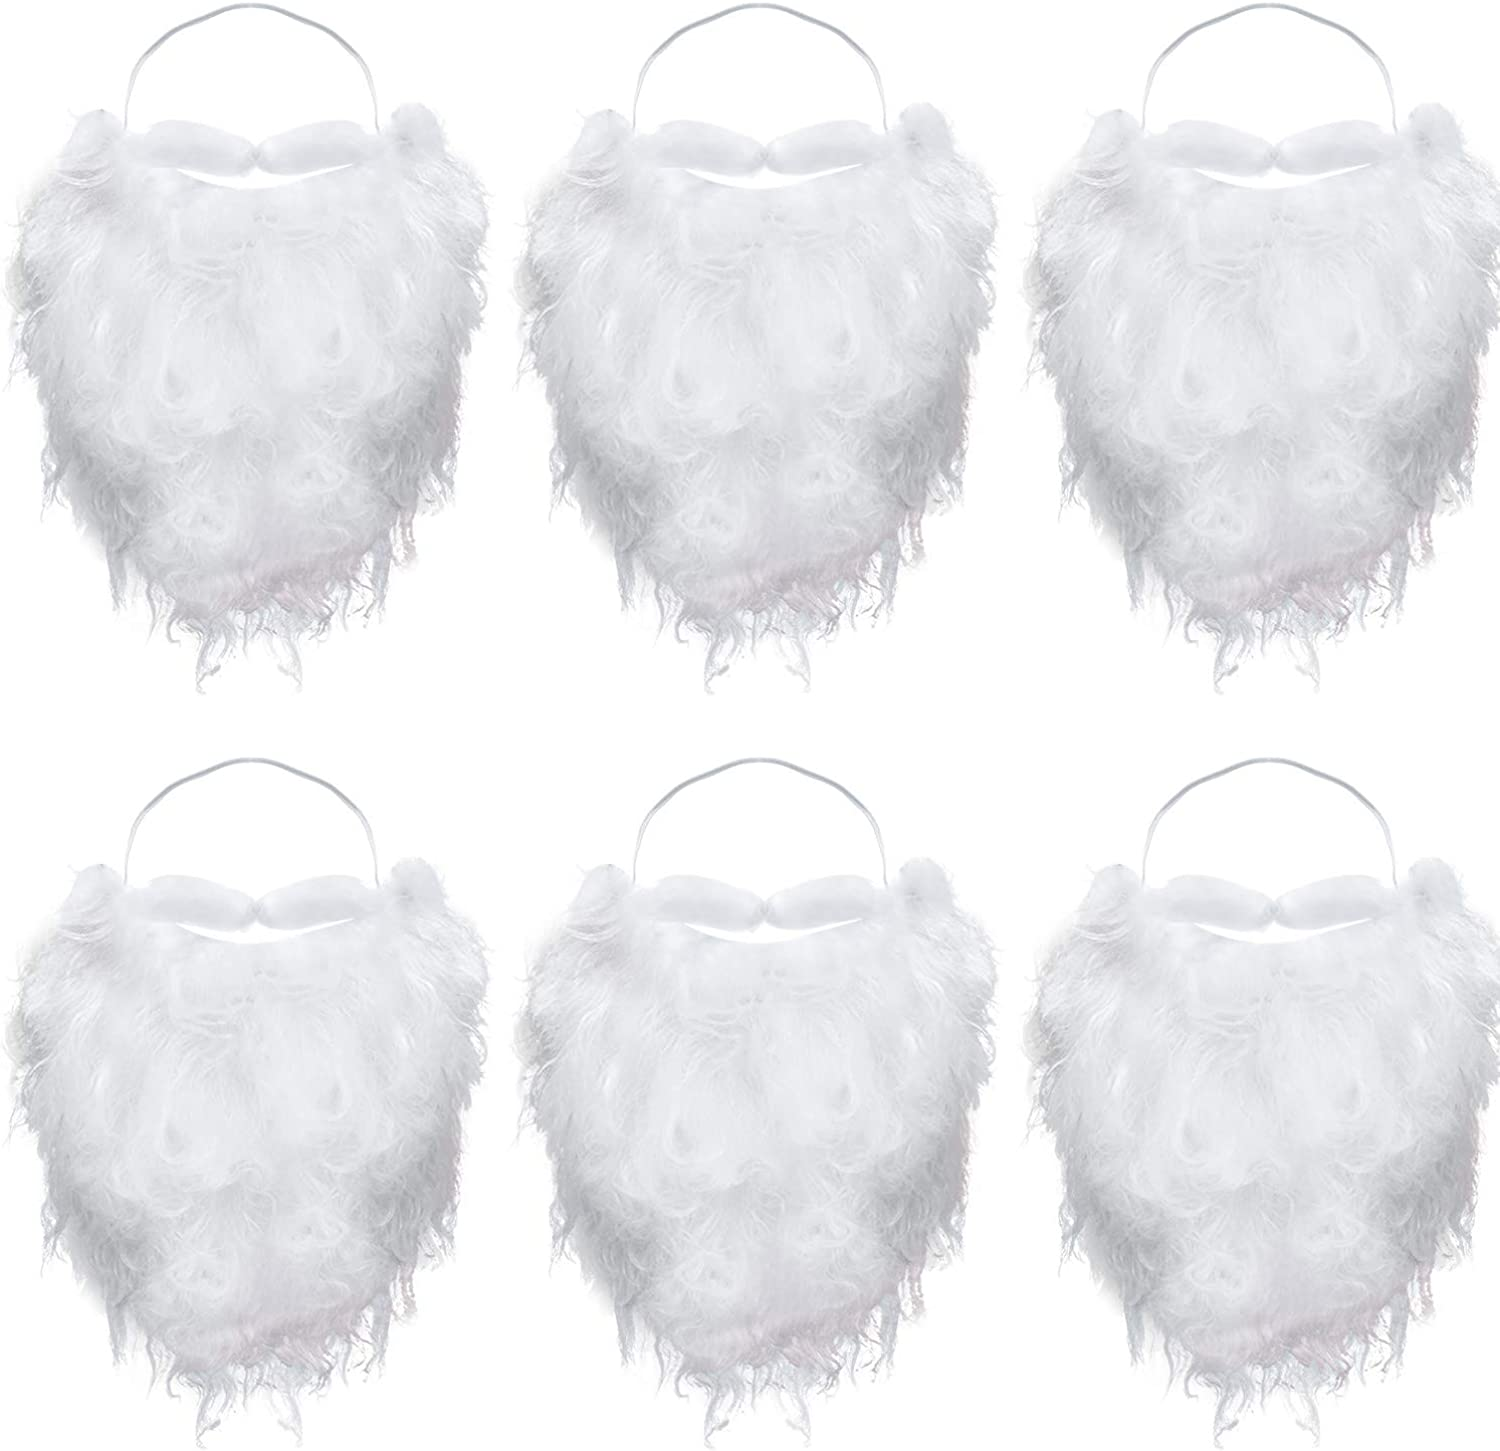 6 Pieces Funny Fake Beard Fake White Beard Costume for Cosplay Party Supplies